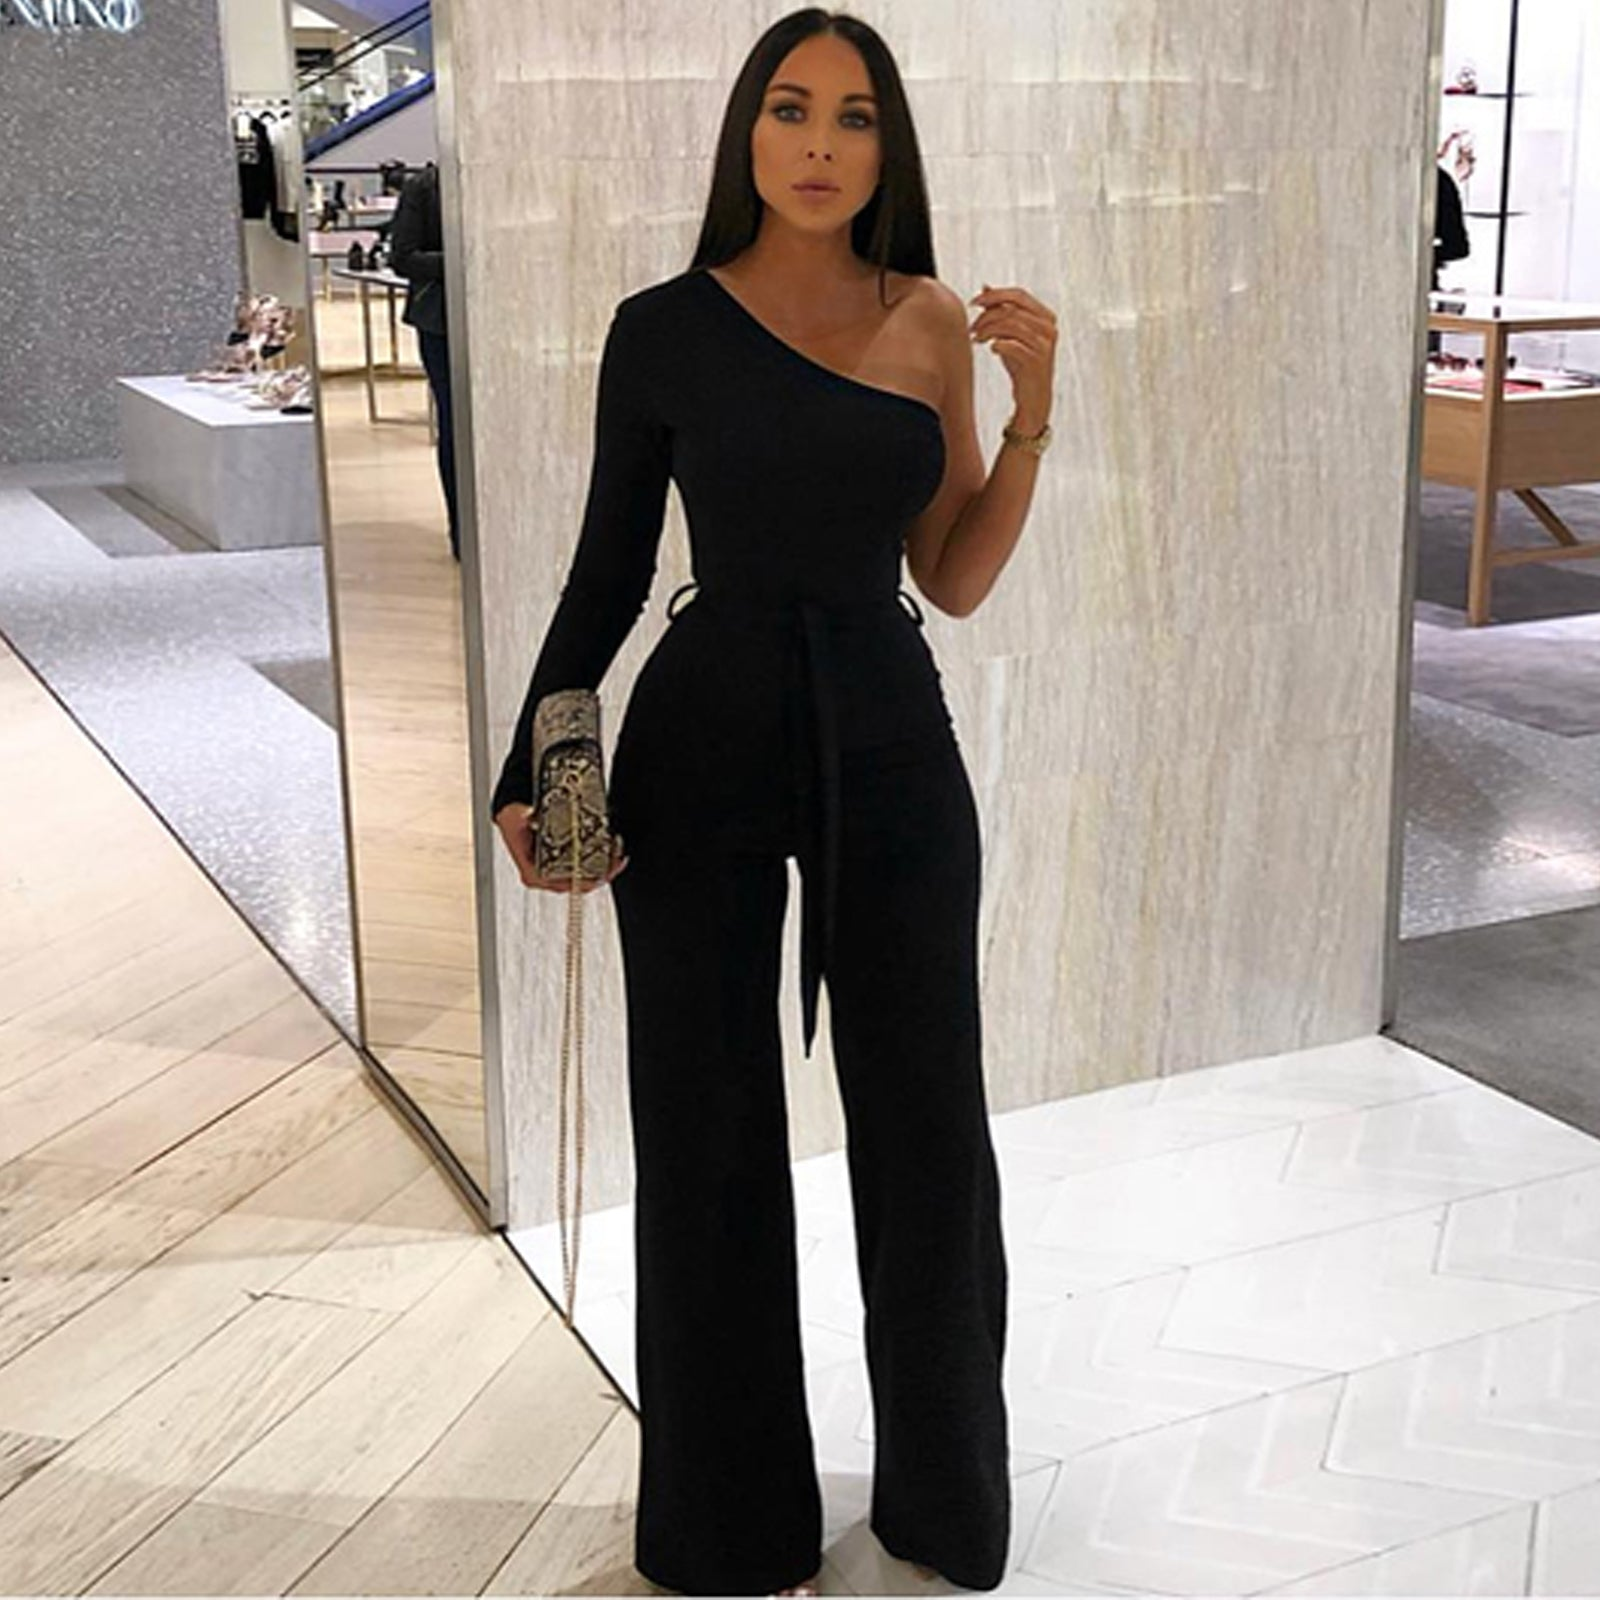 adc455832dabf Jumpsuits | Women's Long Sleeve Jumpsuits & Rompers | Femme Luxe UK –  FemmeLuxe